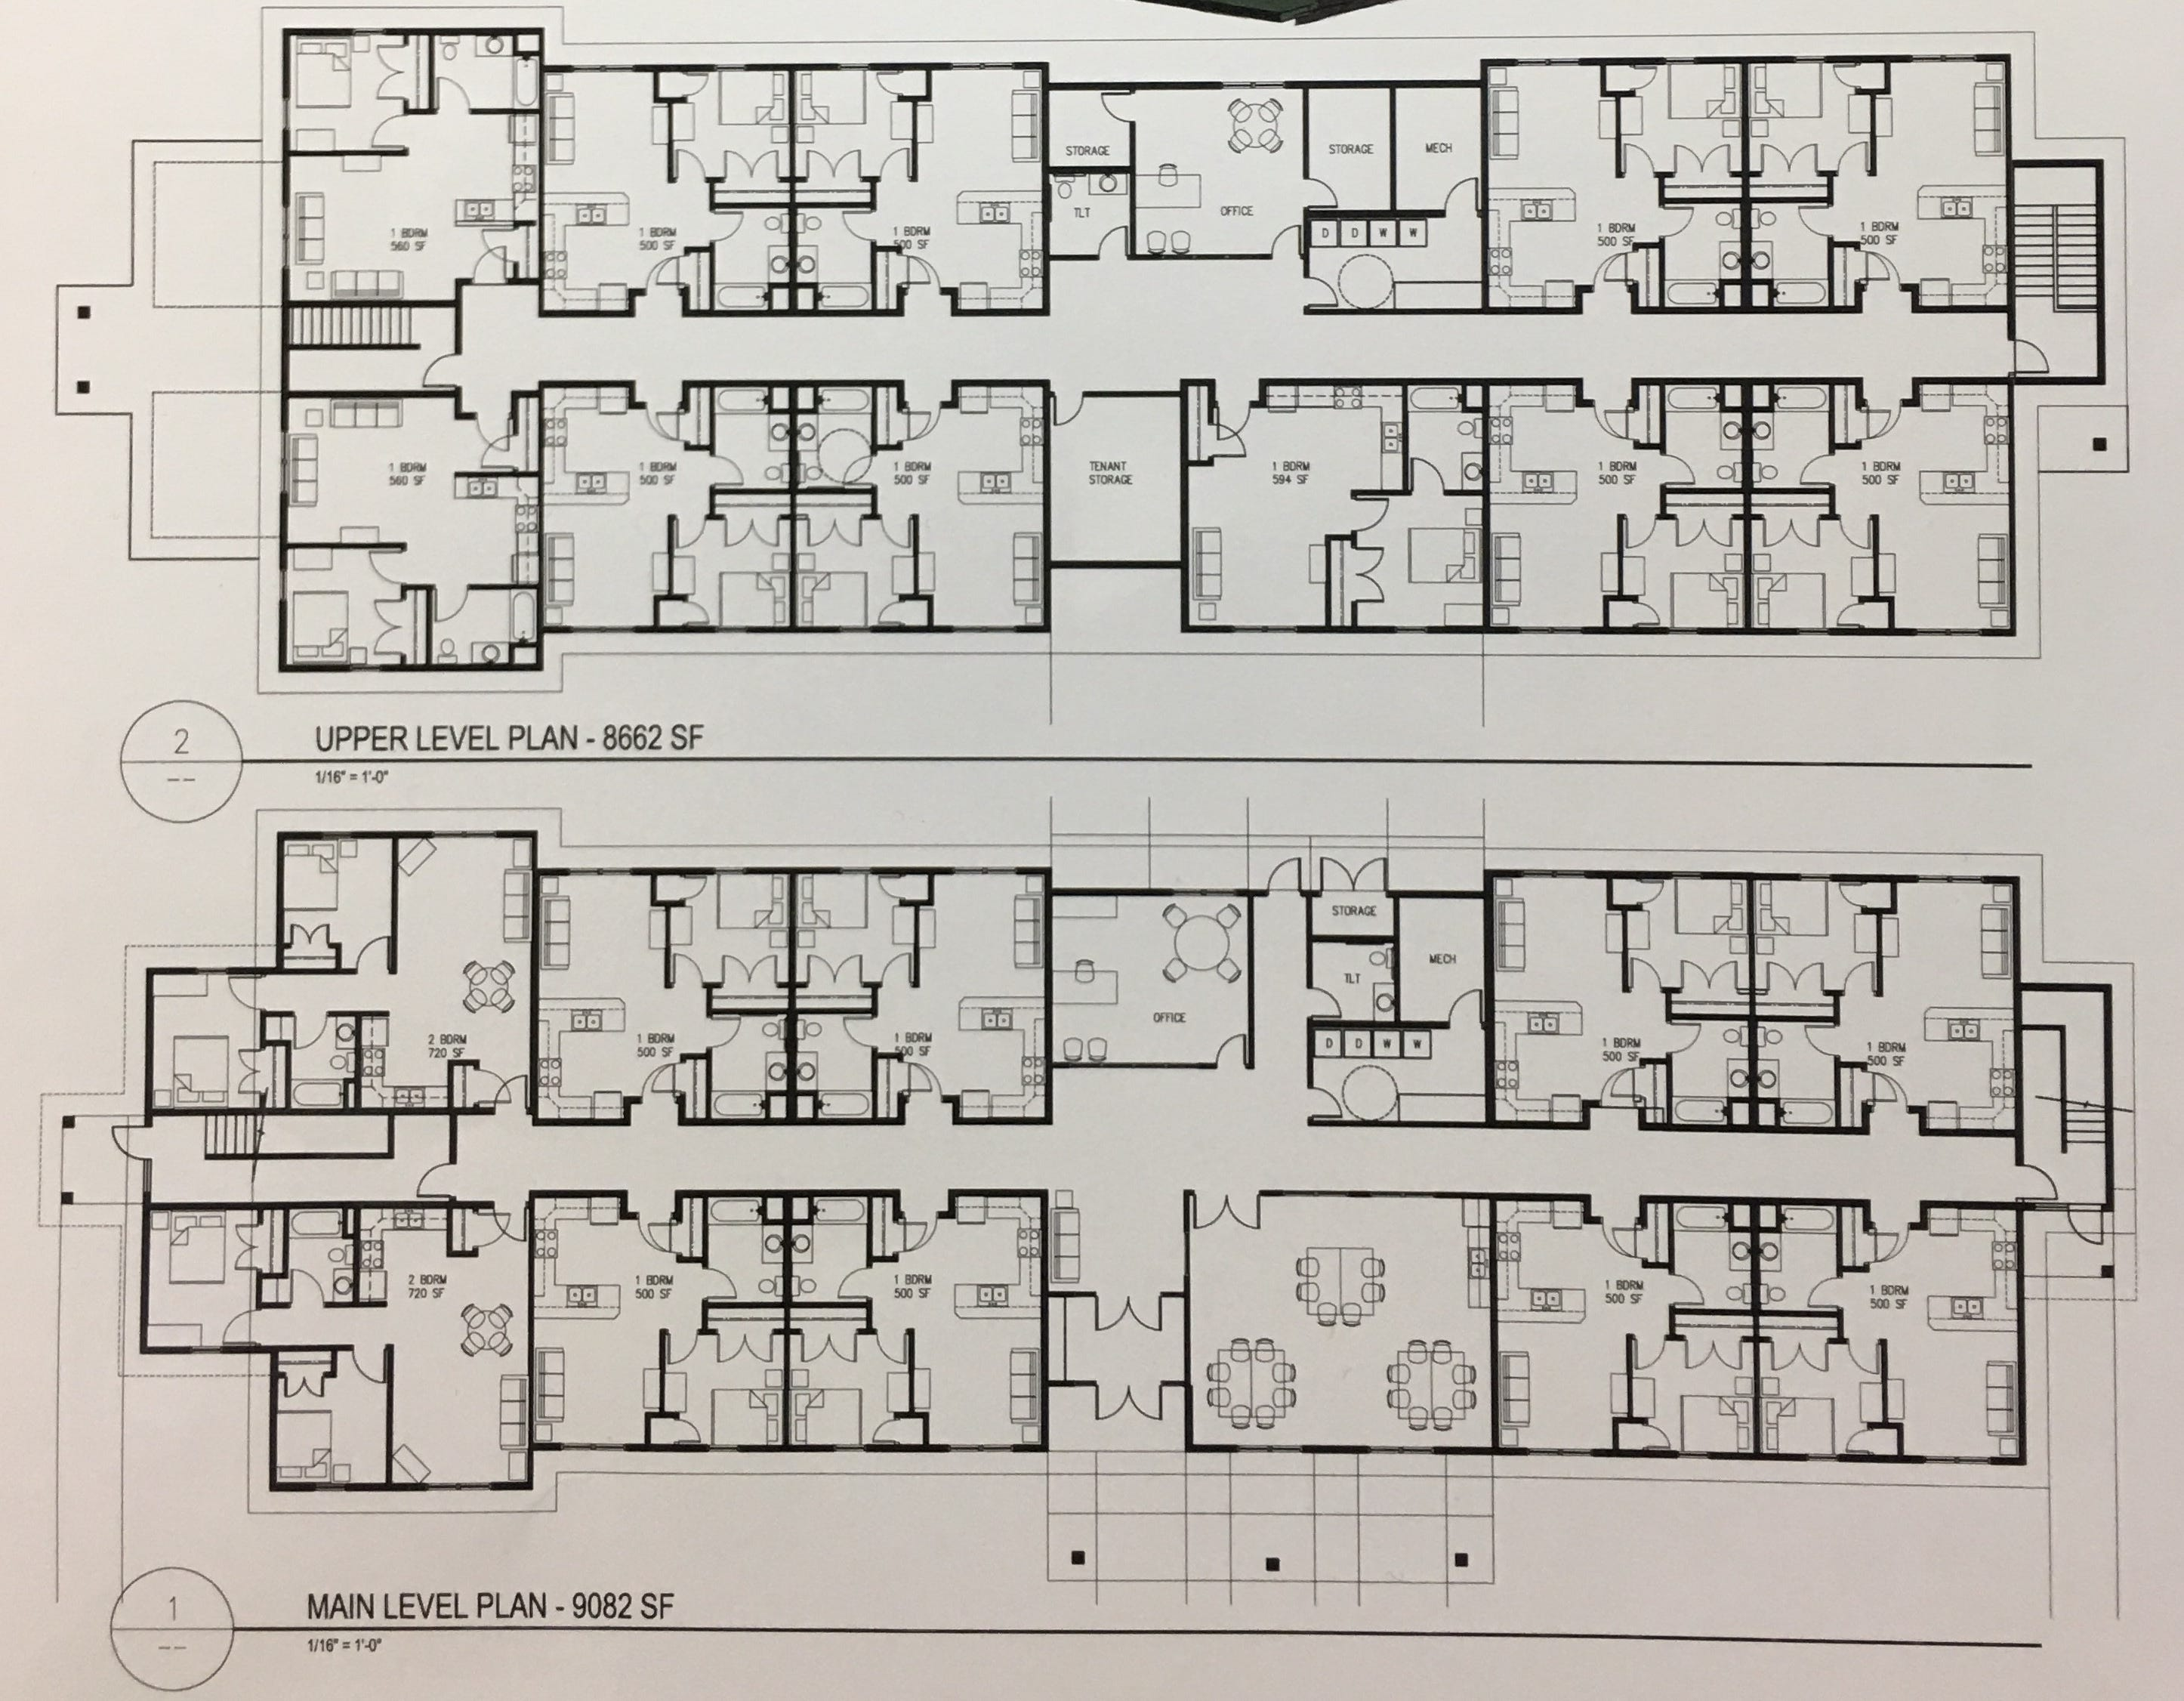 Above is an artist rendering of the floor plan for a new, 21-unit affordable housing facility for homeless youth 16-21 years old. The facility, expected to be done by early 2020, is operated by Volunteers of America.